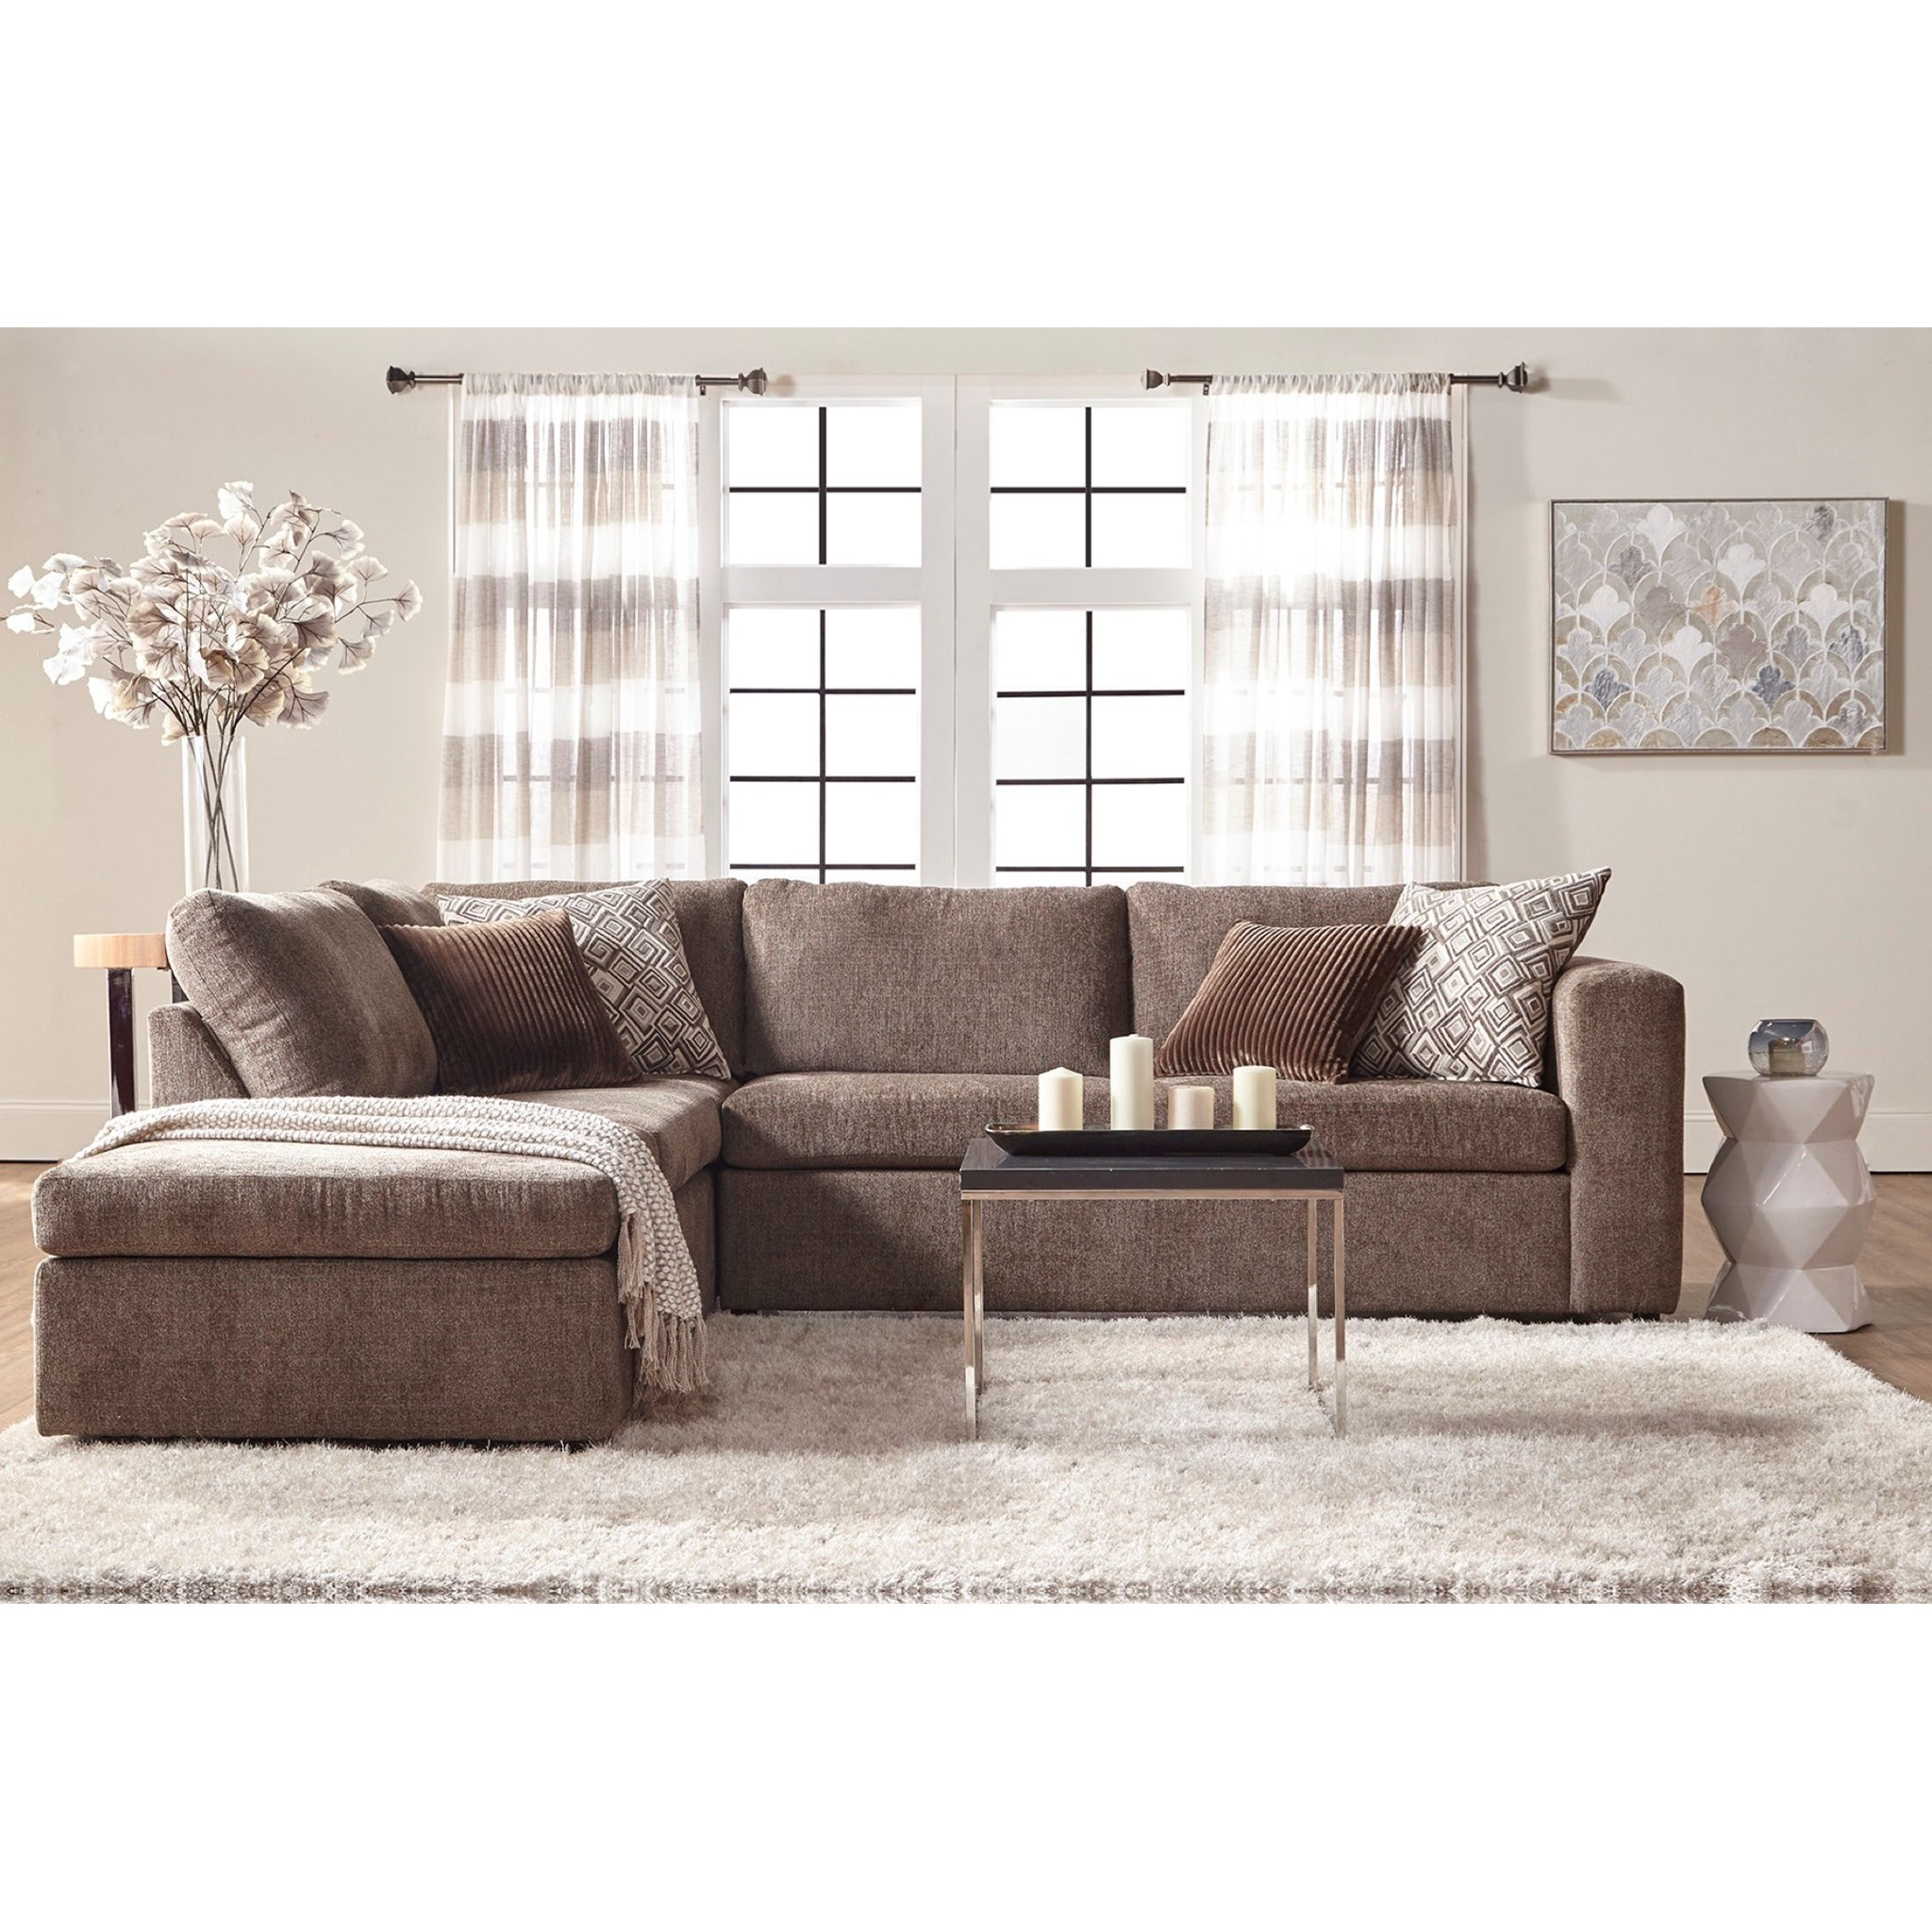 serta upholstery angora casual contemporary sectional sofa with rh rotmans com Chenille Sectional Sofa with Chaise Brown Leather Sectional Sofa